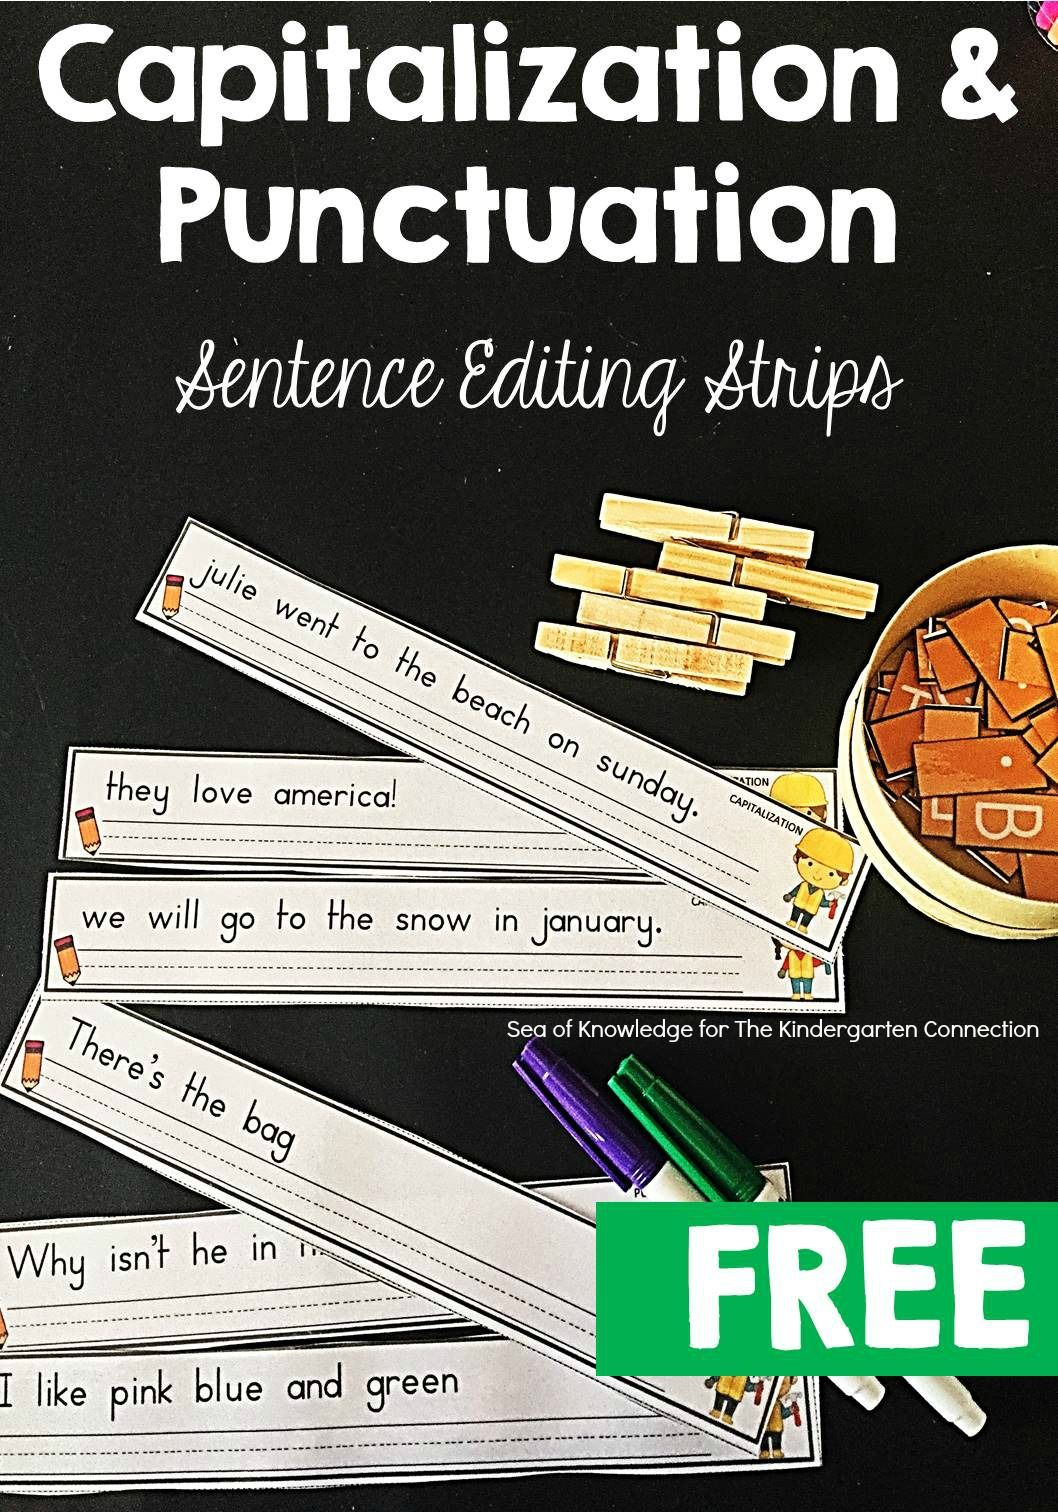 sentence editing strips writing punctuation activities kindergarten writing writing lessons. Black Bedroom Furniture Sets. Home Design Ideas